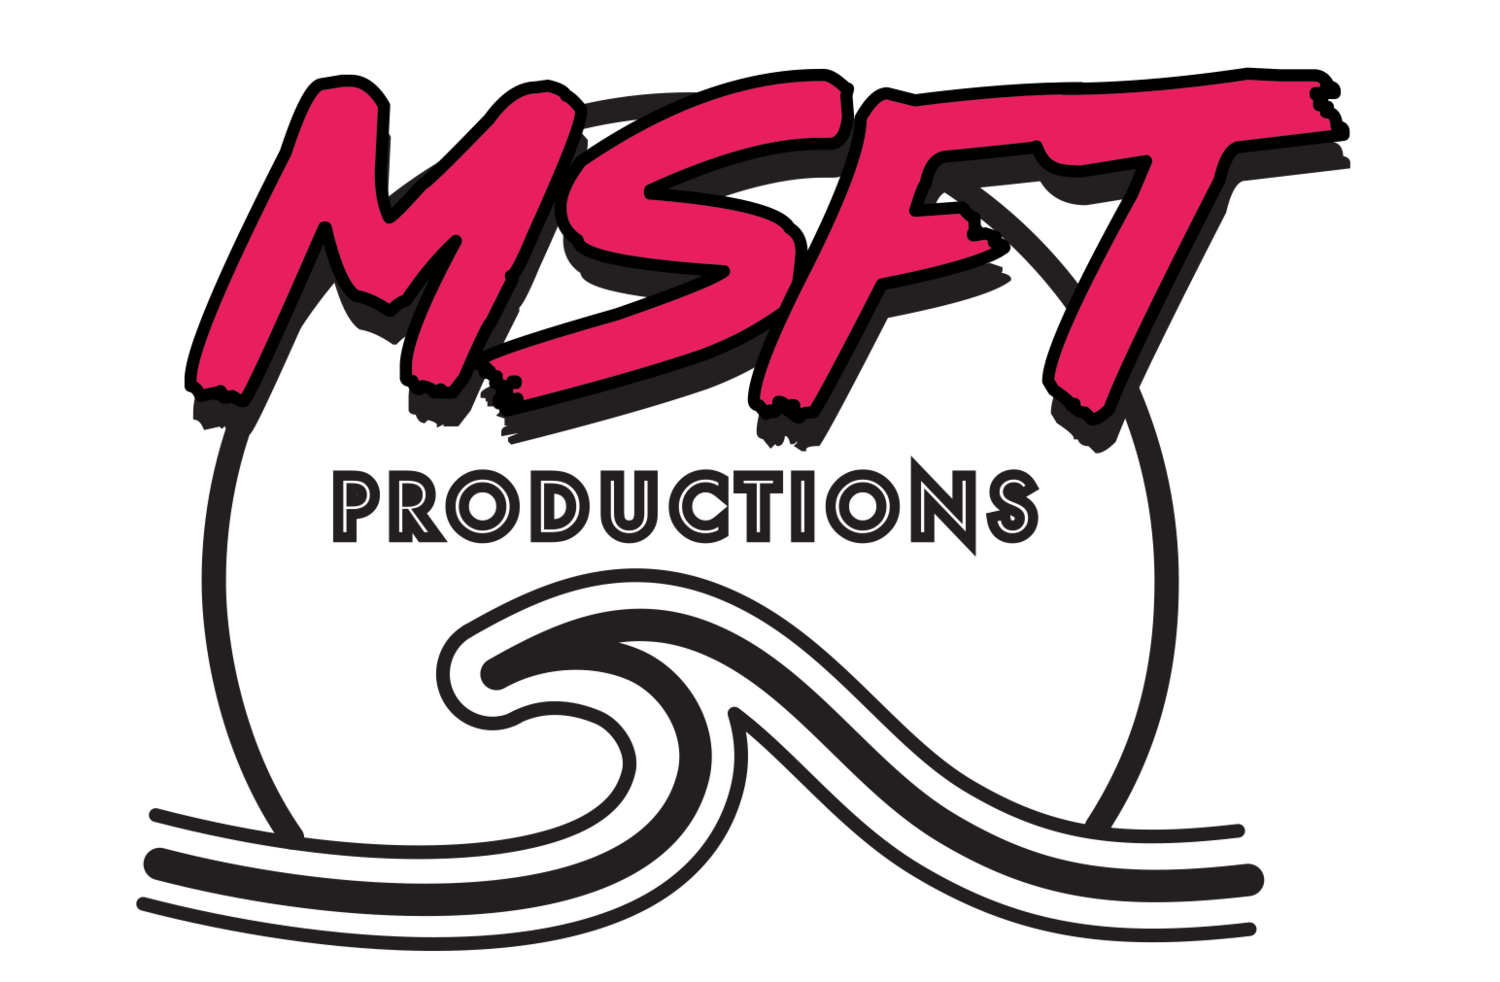 MSFT PRODUCTIONS